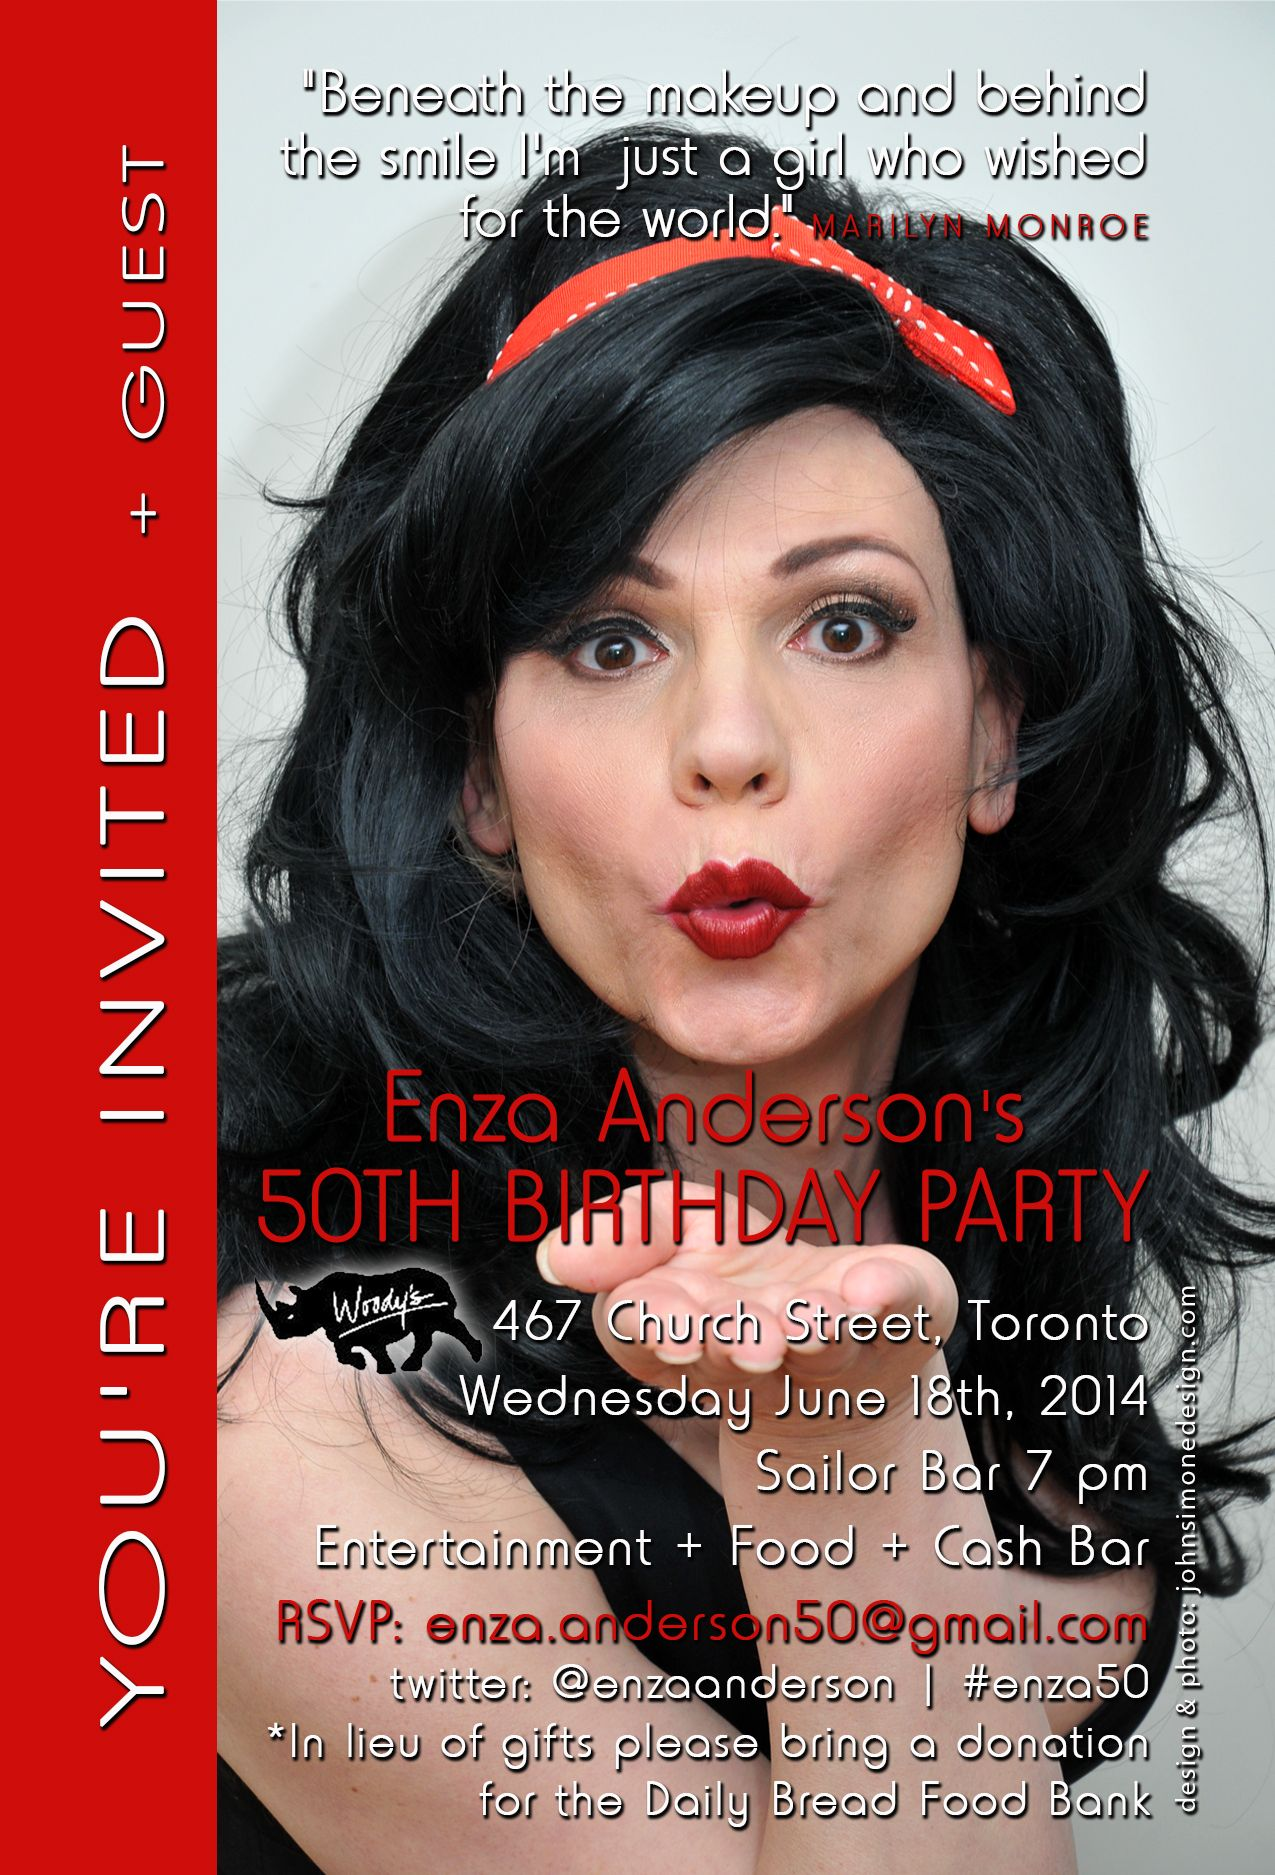 Invite for Enza Anderson's 50th Birthday party.